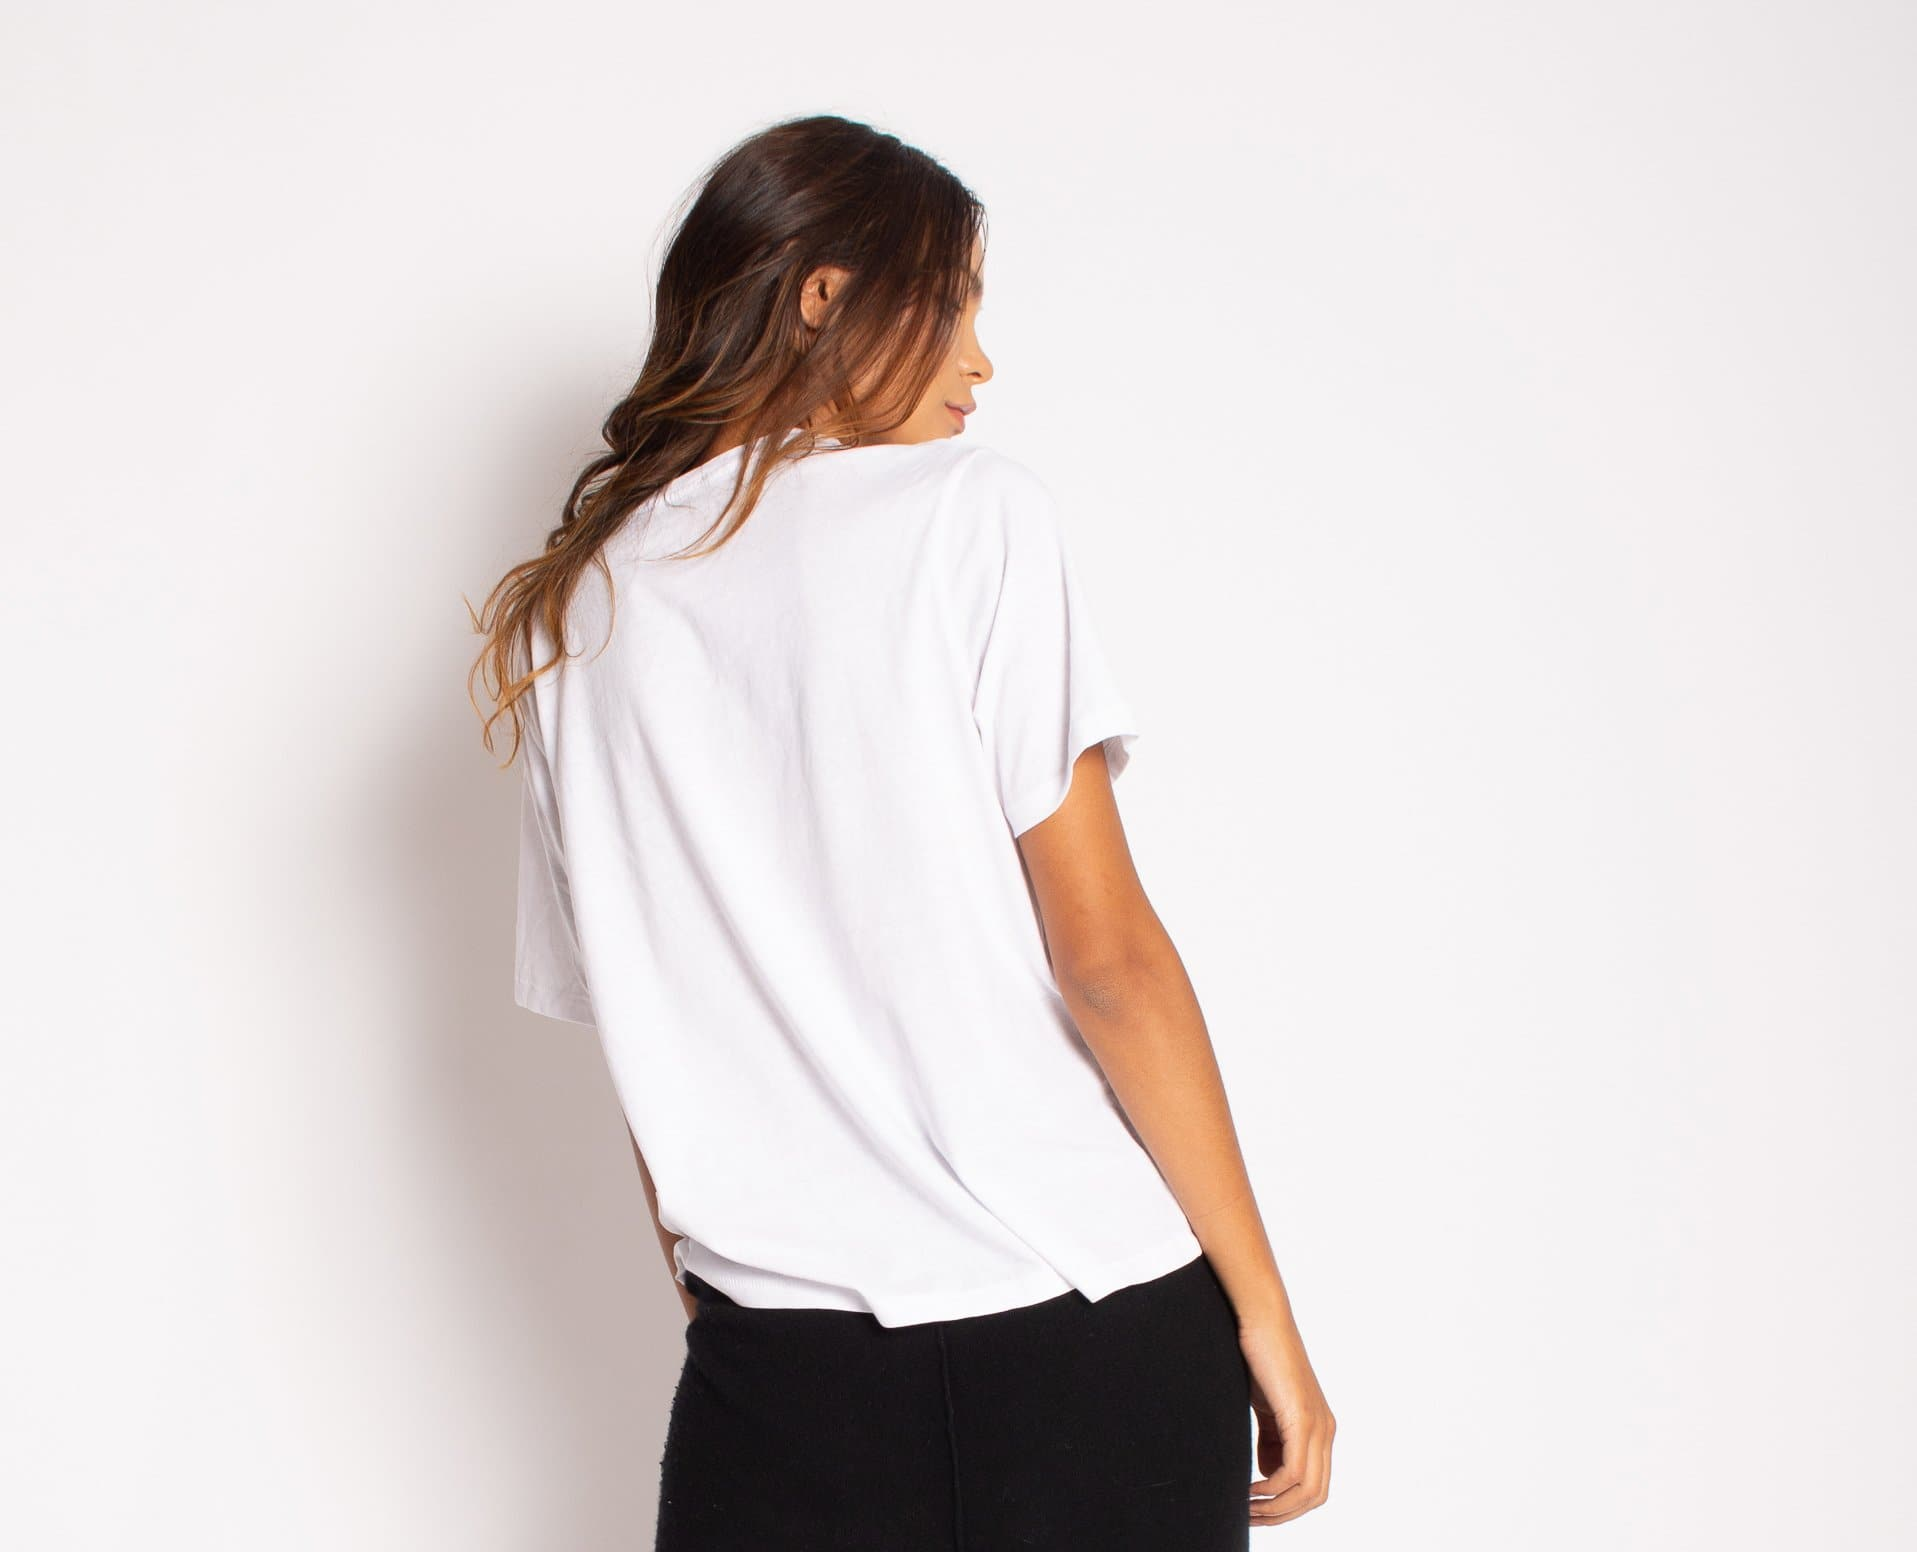 Everyday Embellished Organic Cotton Tee tops Karen Thomas NY